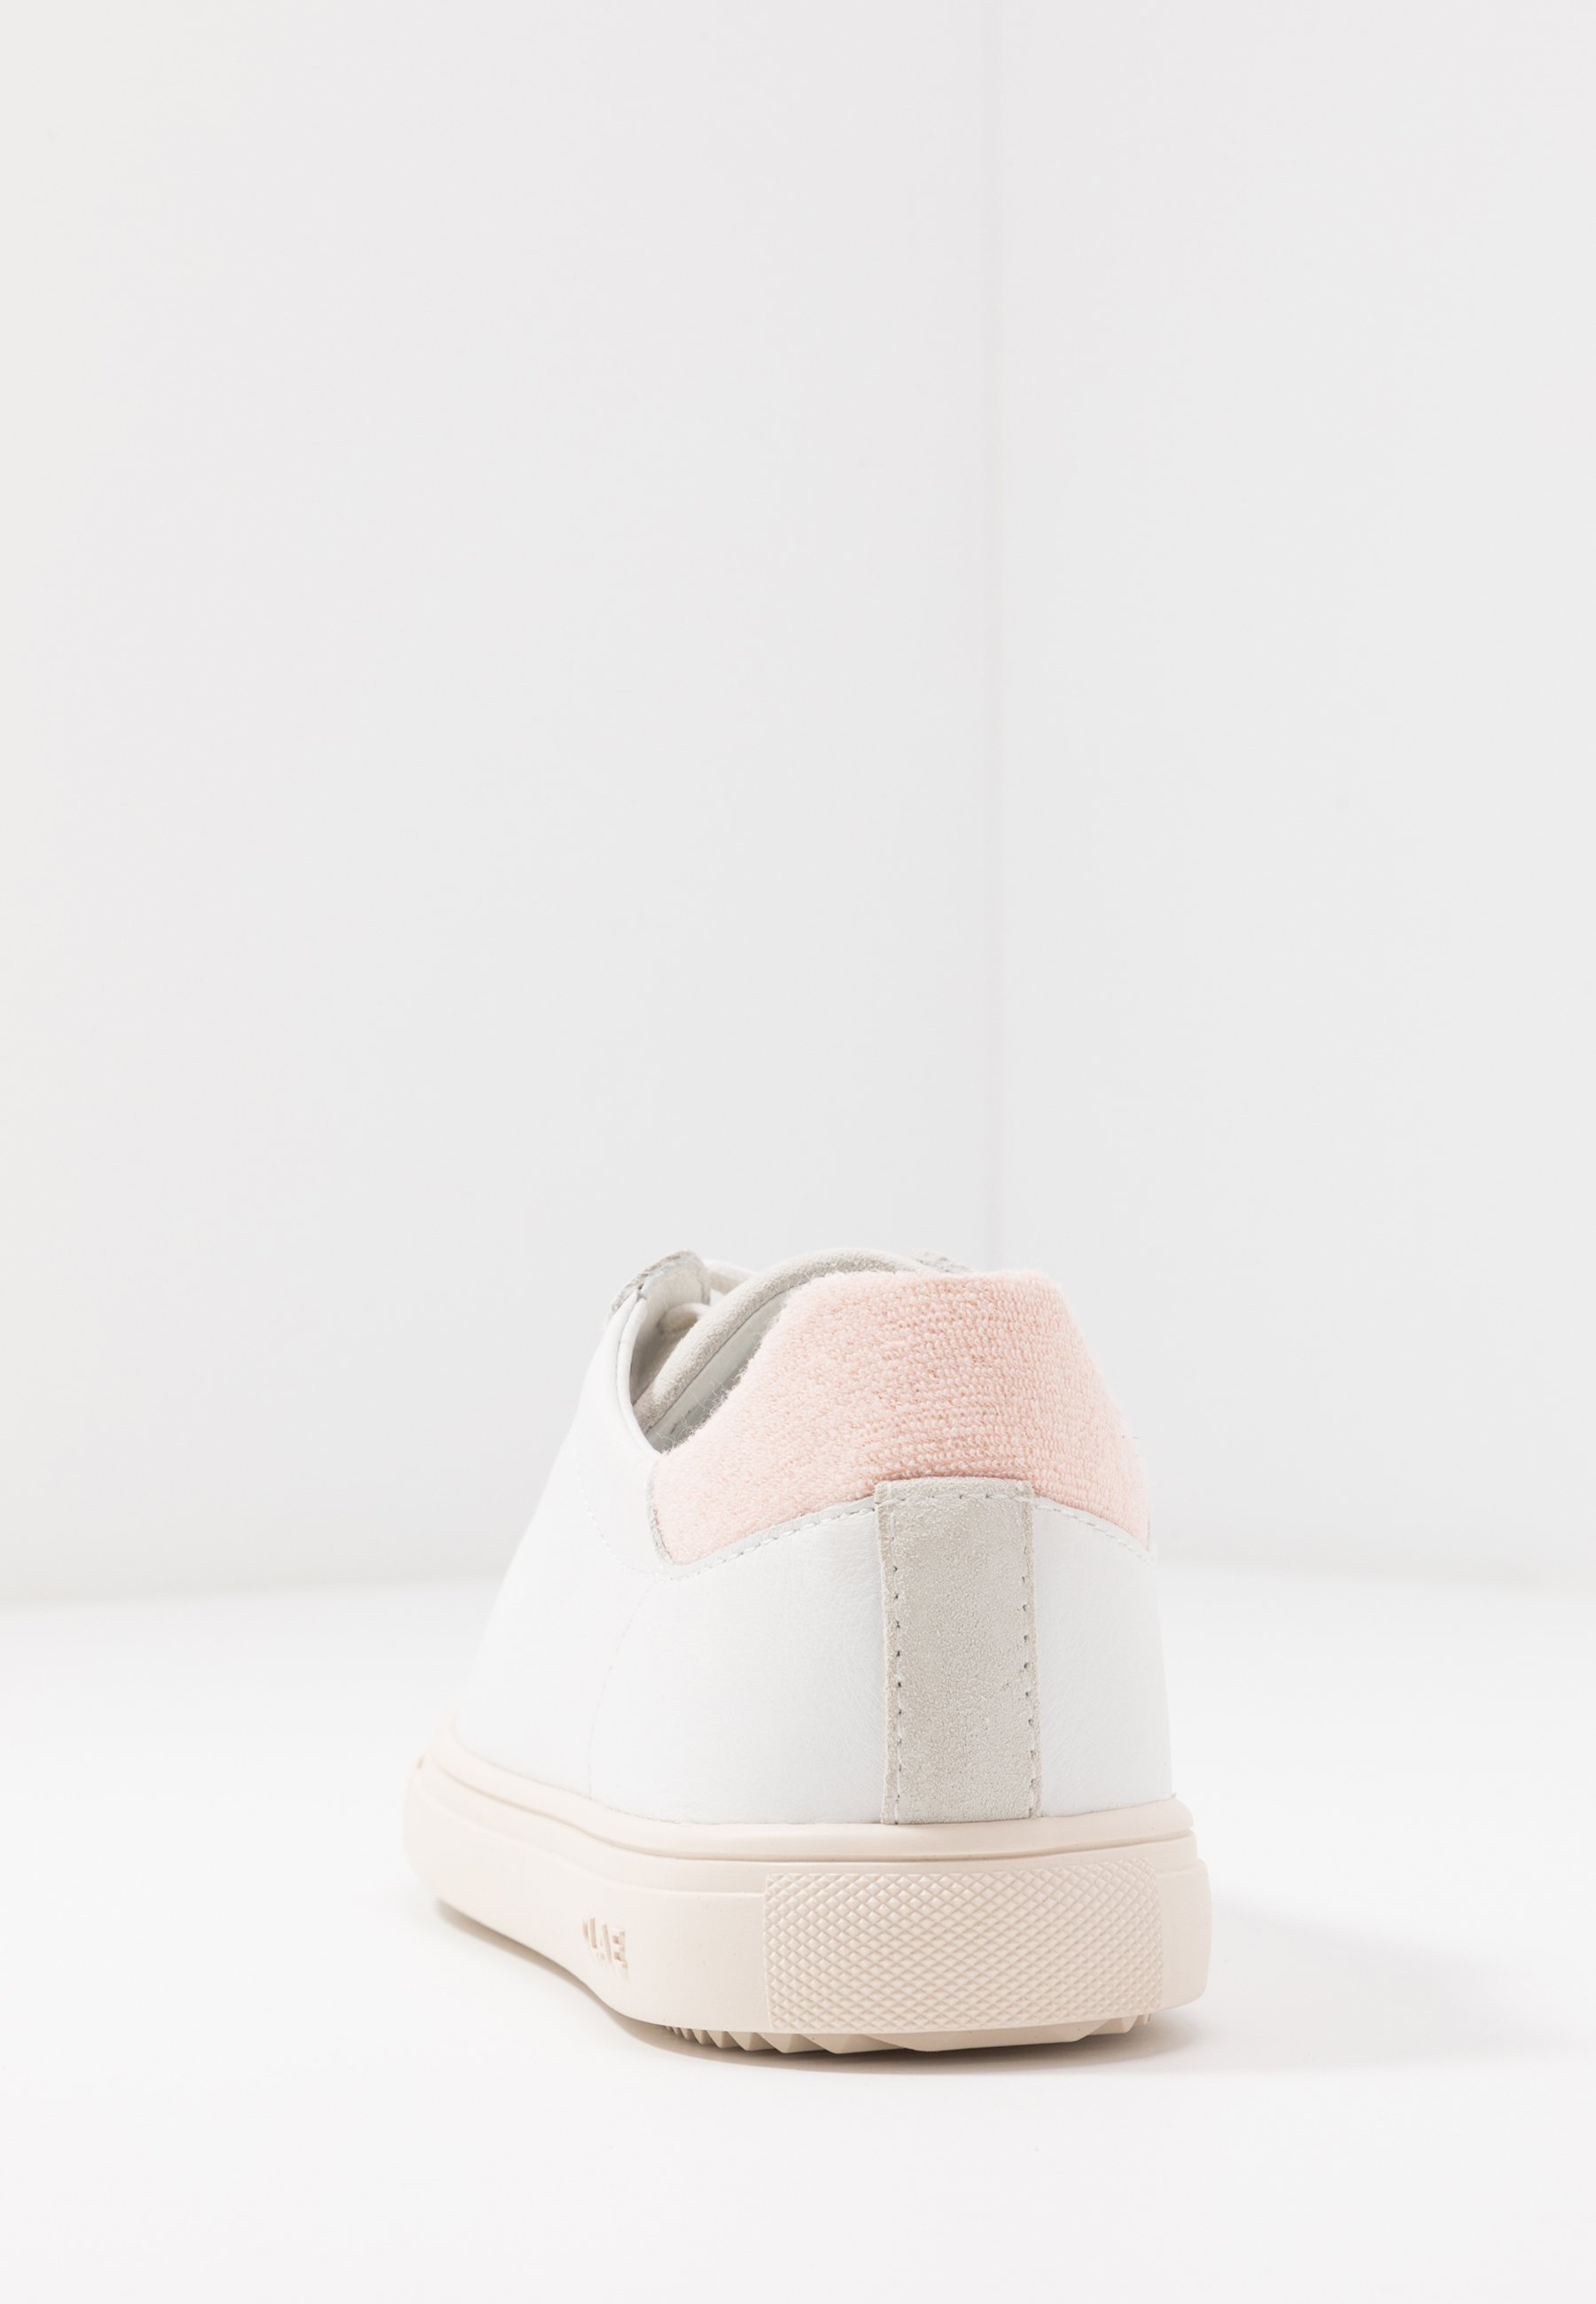 Clae Bradley - Baskets Basses White/pink